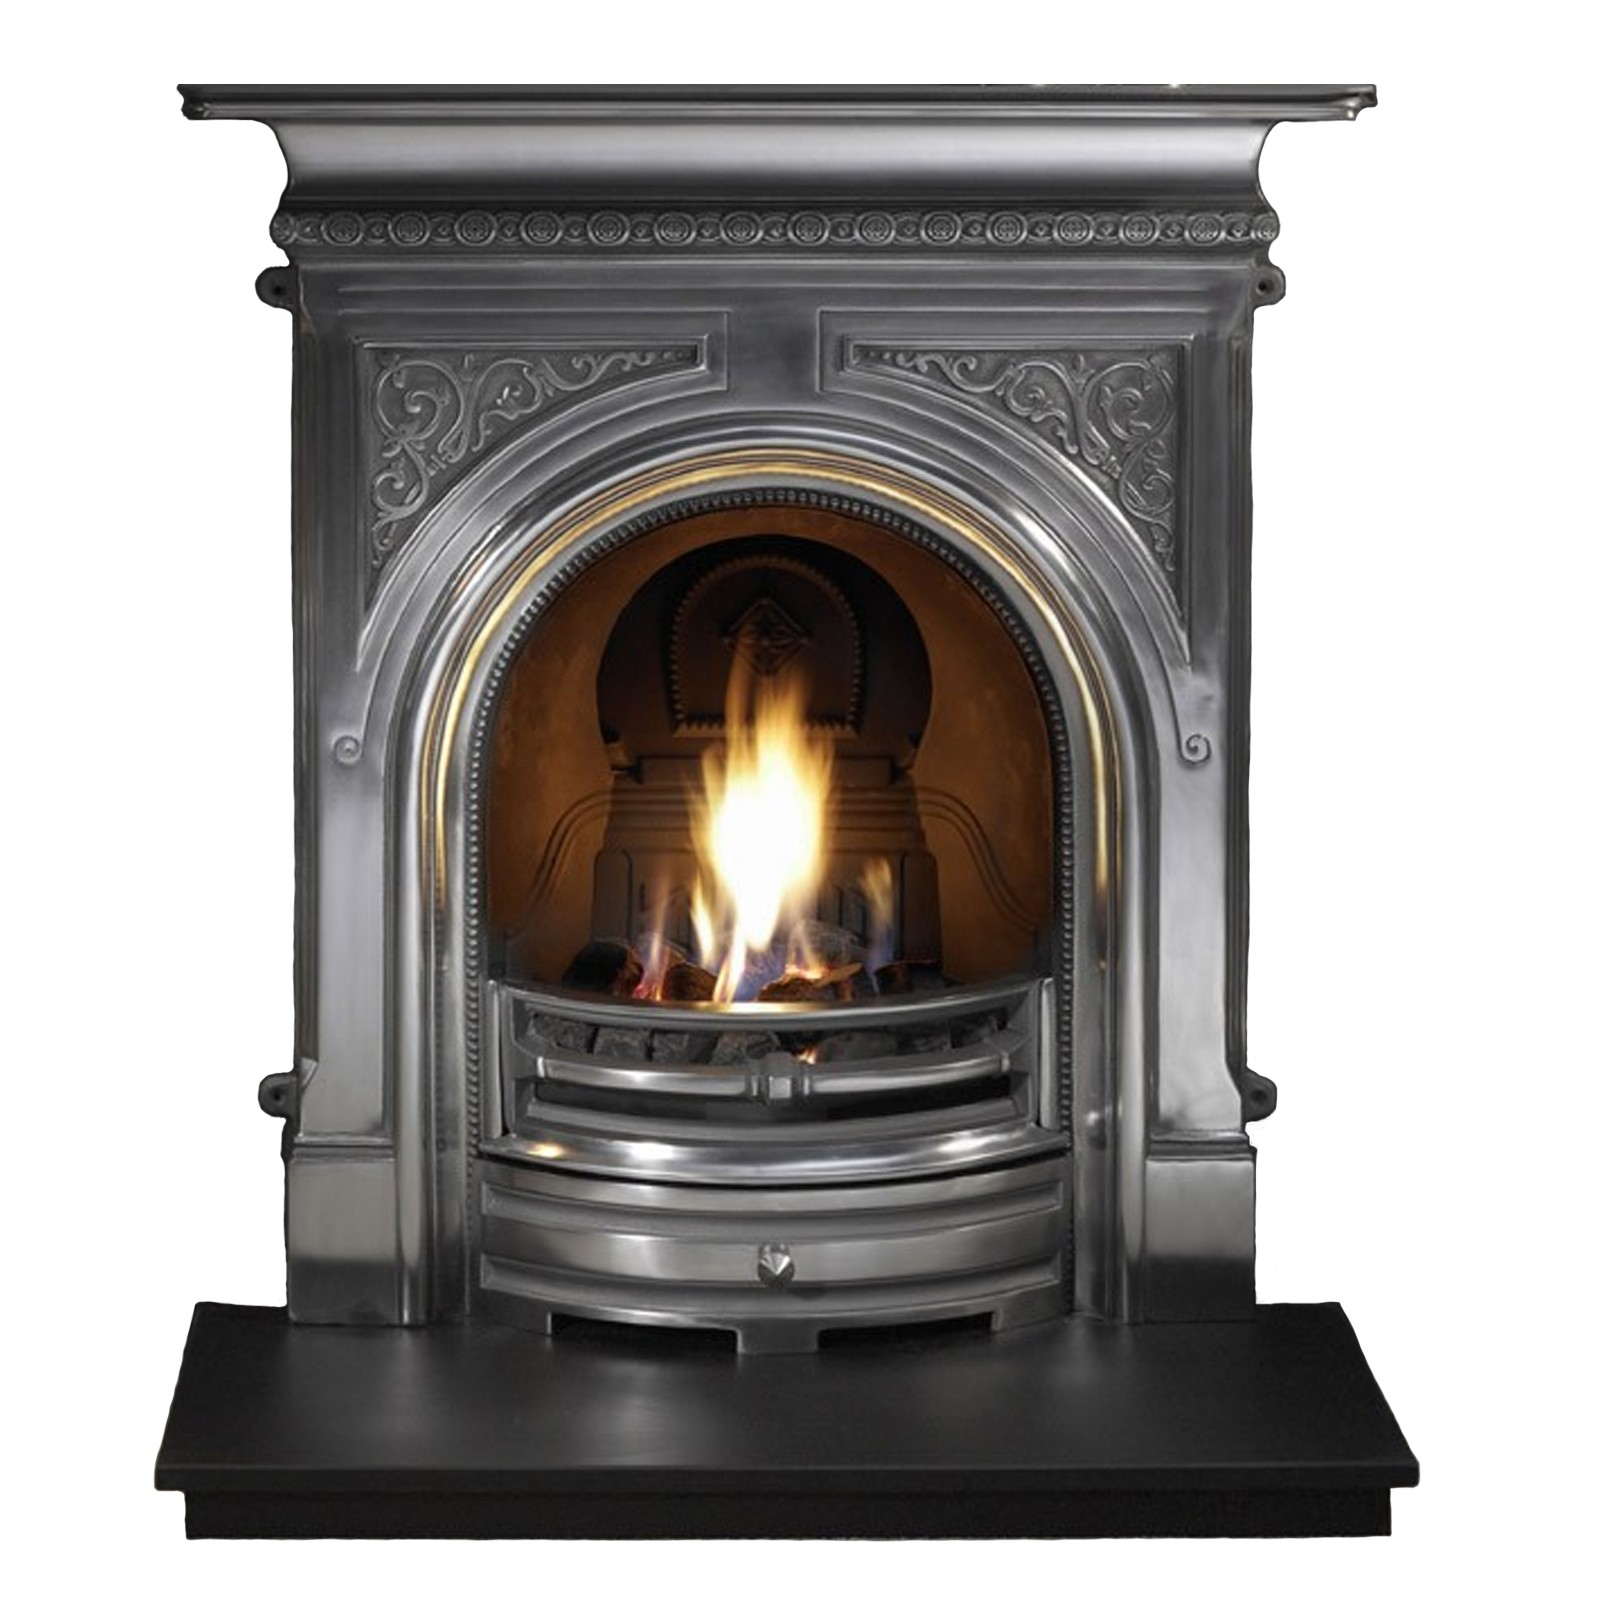 Popular Choice Gallery Celtic Cast Iron Fireplace Uk